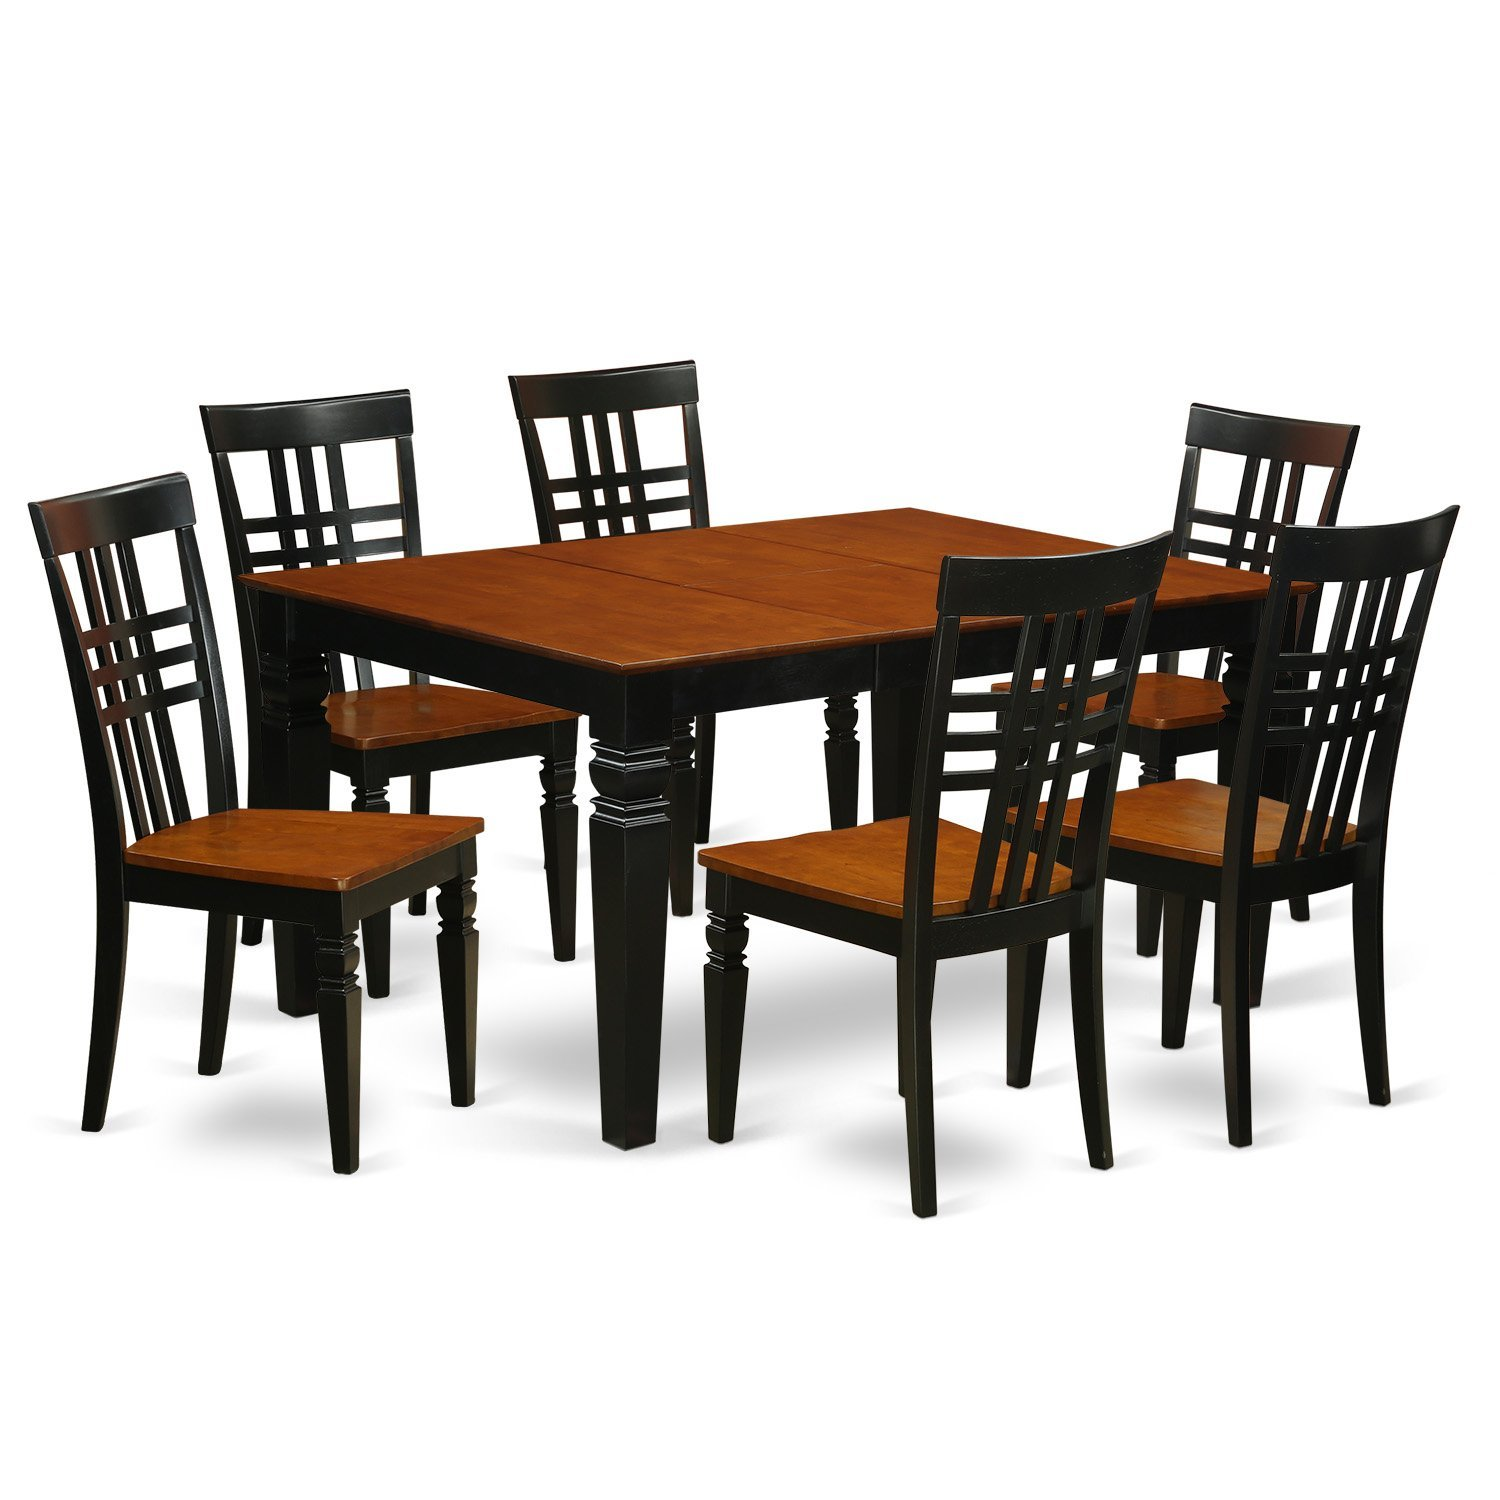 East West Furniture Weston WELG7-BCH-W 7 Pc Set with a Kitchen Table and 6 Wood Dining Chairs, Black